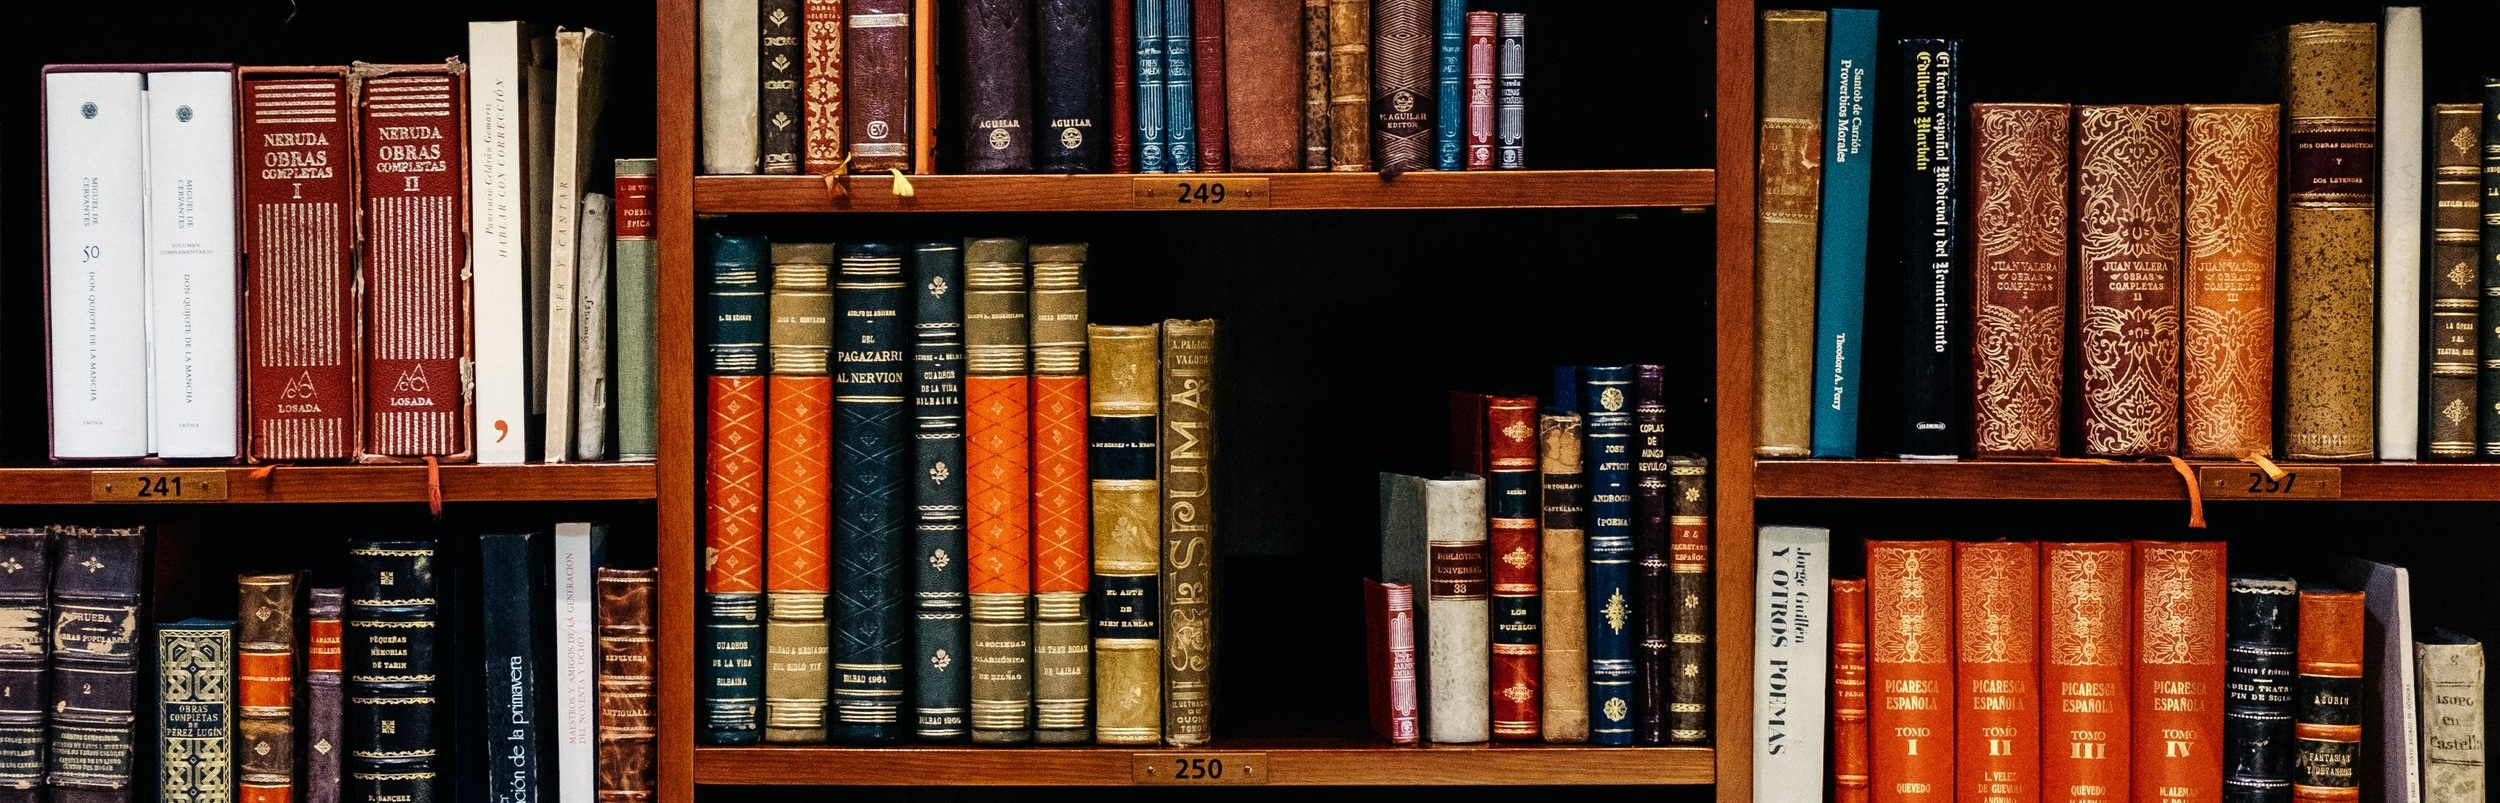 Library - Great reads